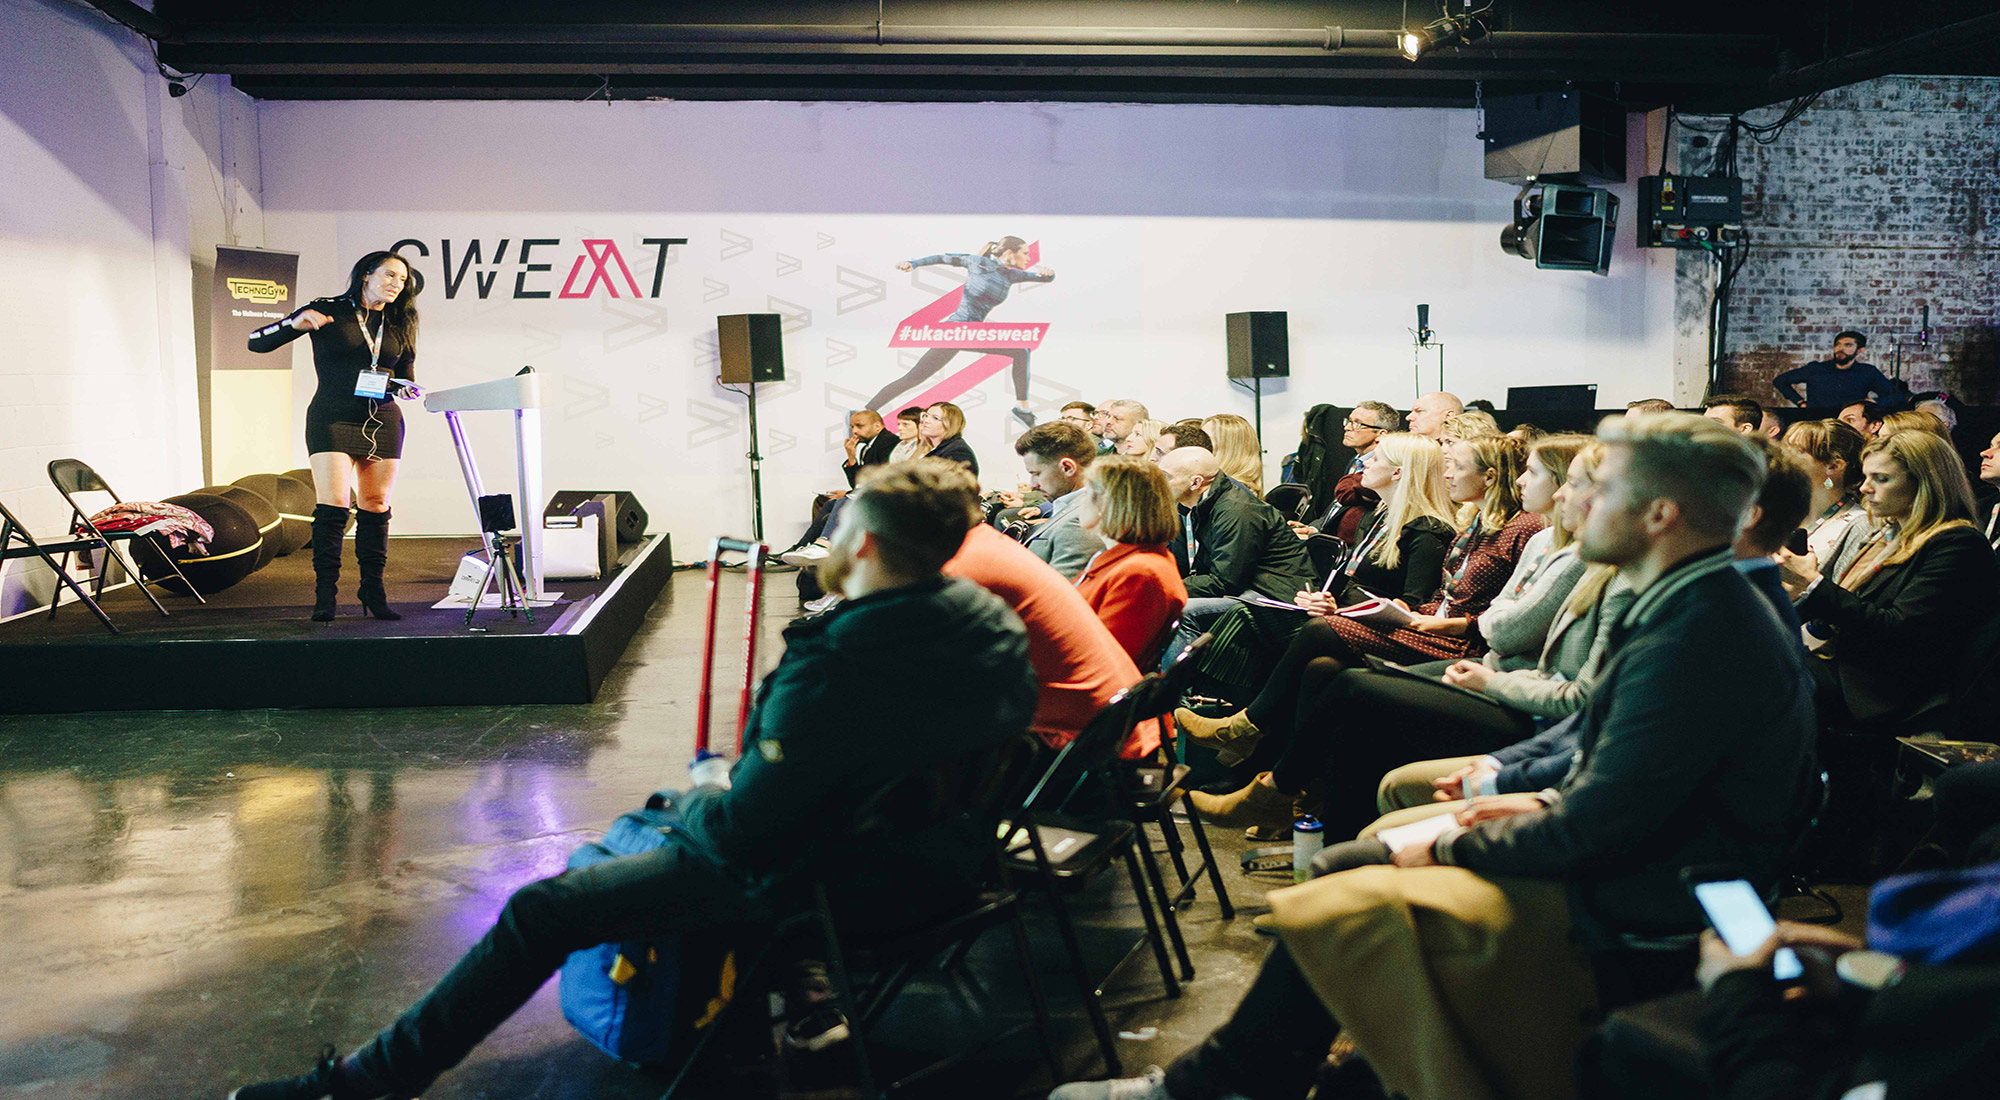 ukactive's Sweat 2019 to explore risk of 'peak boutique' in fitness